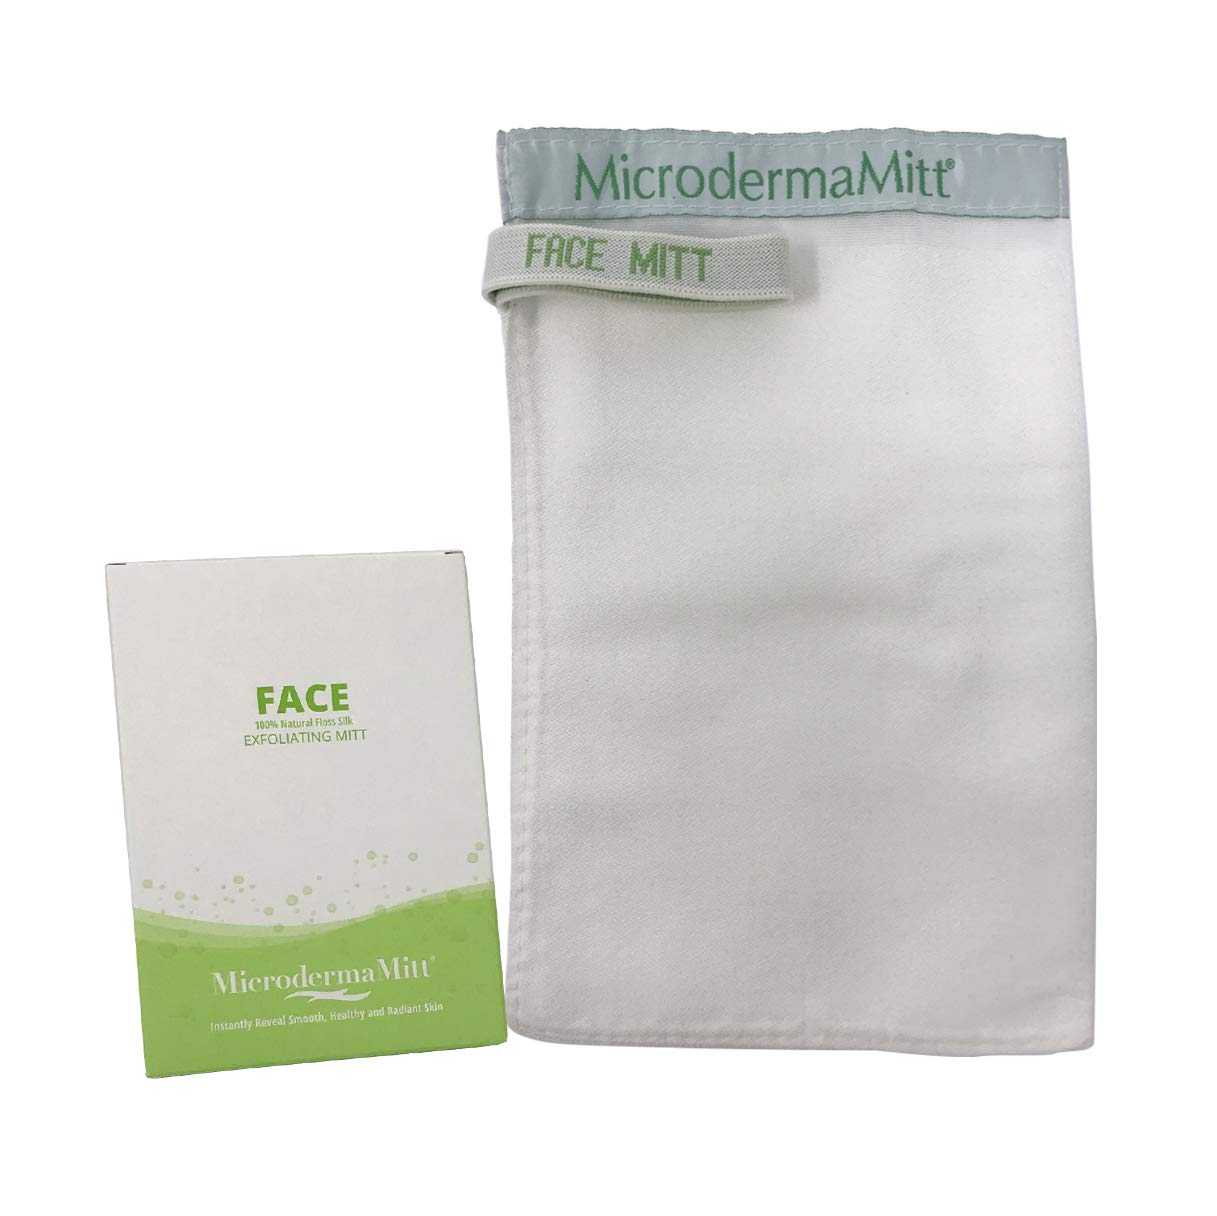 Microdermamitt Deep Exfoliating Face Mitt Firming Dry Skin Treatment-Unclog Pores, Repair Wrinkles, Sun Damage, Remove Imperfections and Invigorate Your Skin